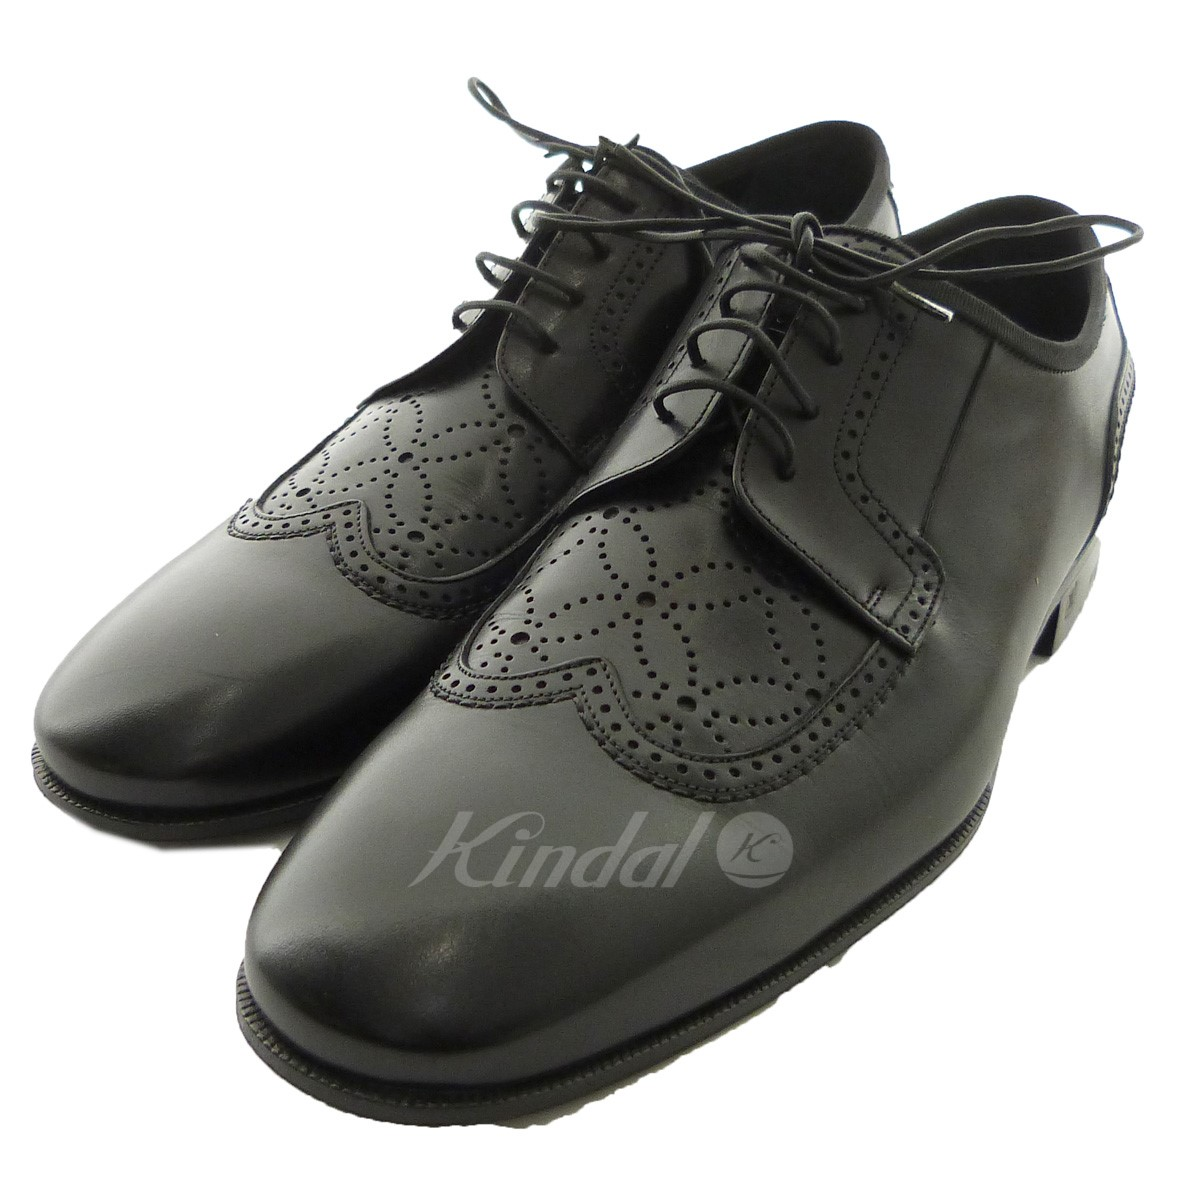 【中古】LOUIS VUITTON 「ACAJOU DERBY」ダービーシューズ 【送料無料】 【172394】 【KIND1641】